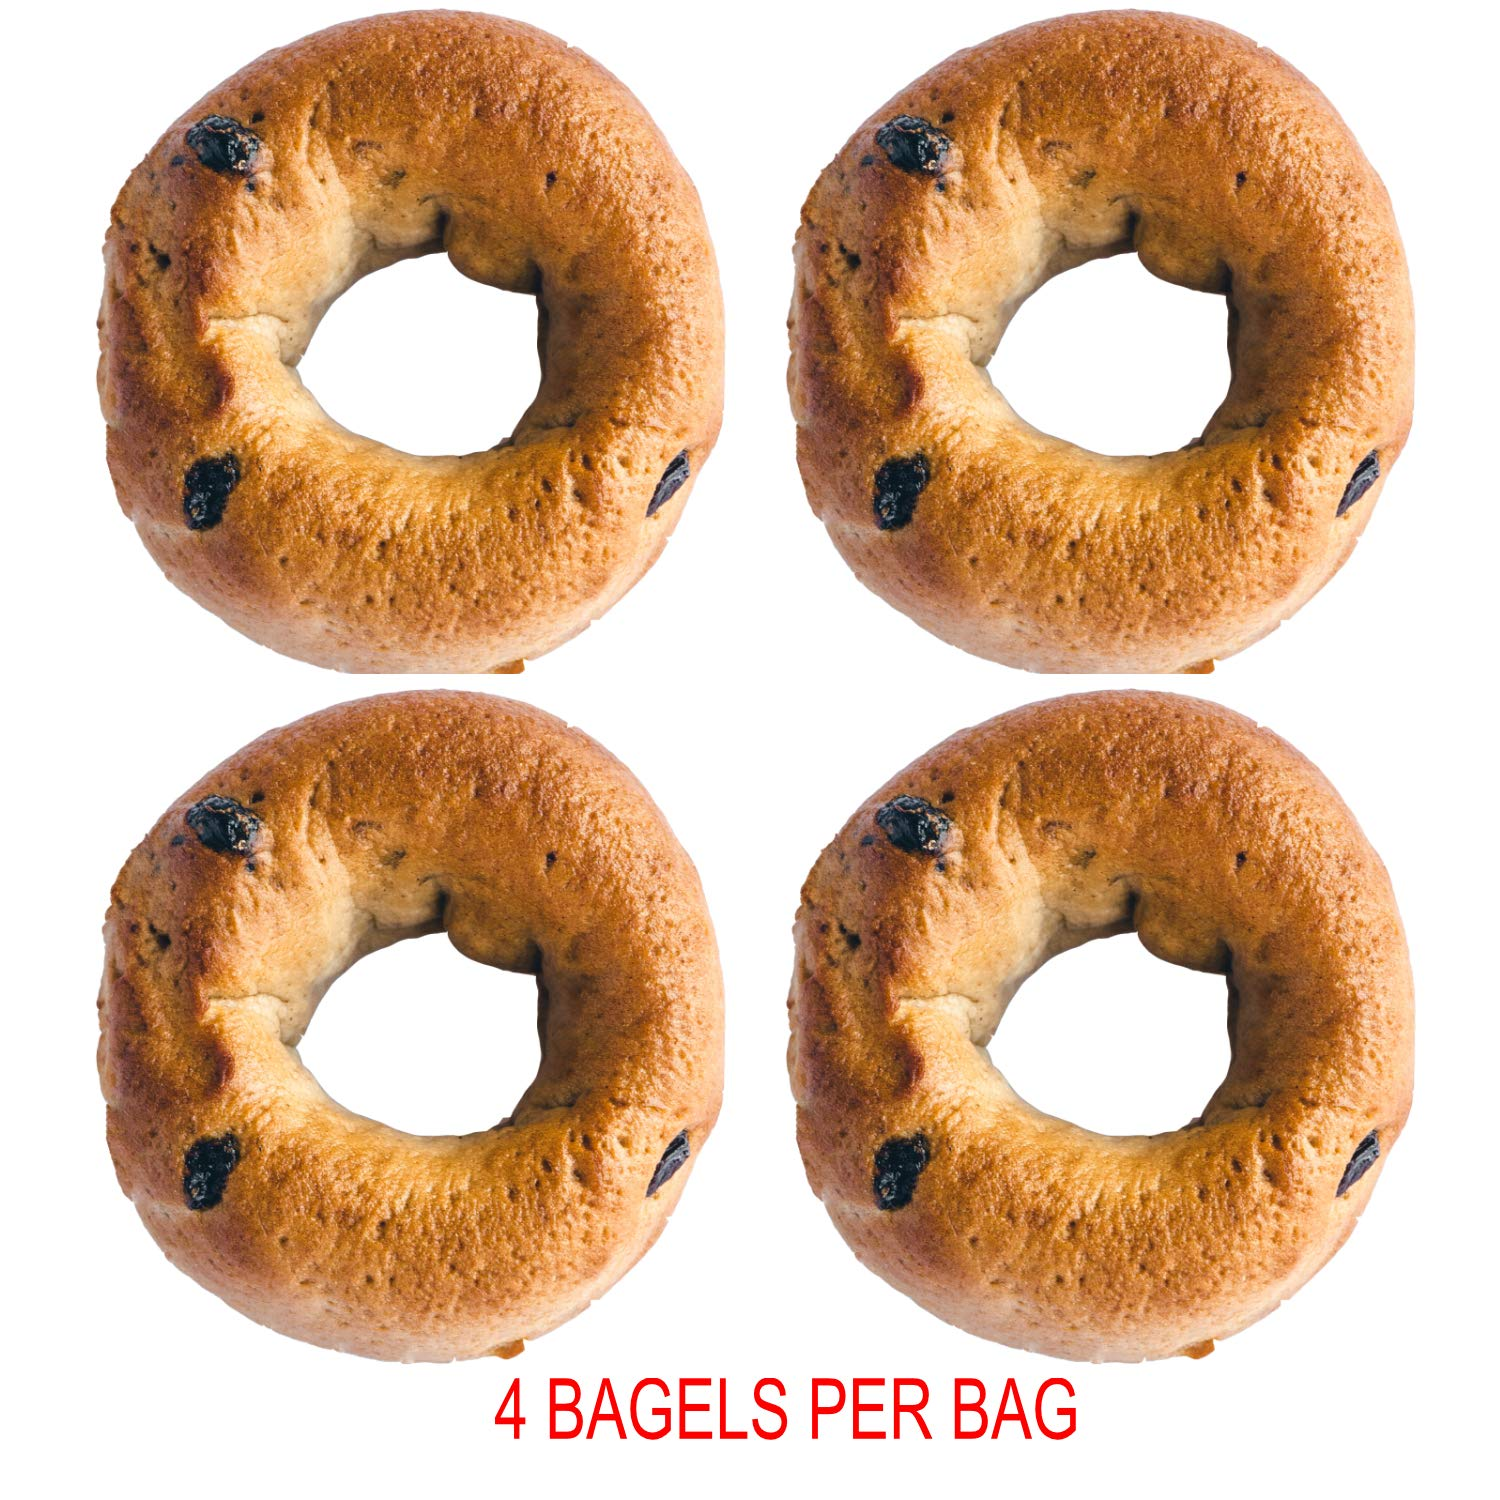 Greater Knead Gluten Free Bagel - Cinnamon Raisin - Vegan, non-GMO, Free of Wheat, Nuts, Soy, Peanuts, Tree Nuts (12 bagels) by The Greater Knead (Image #4)